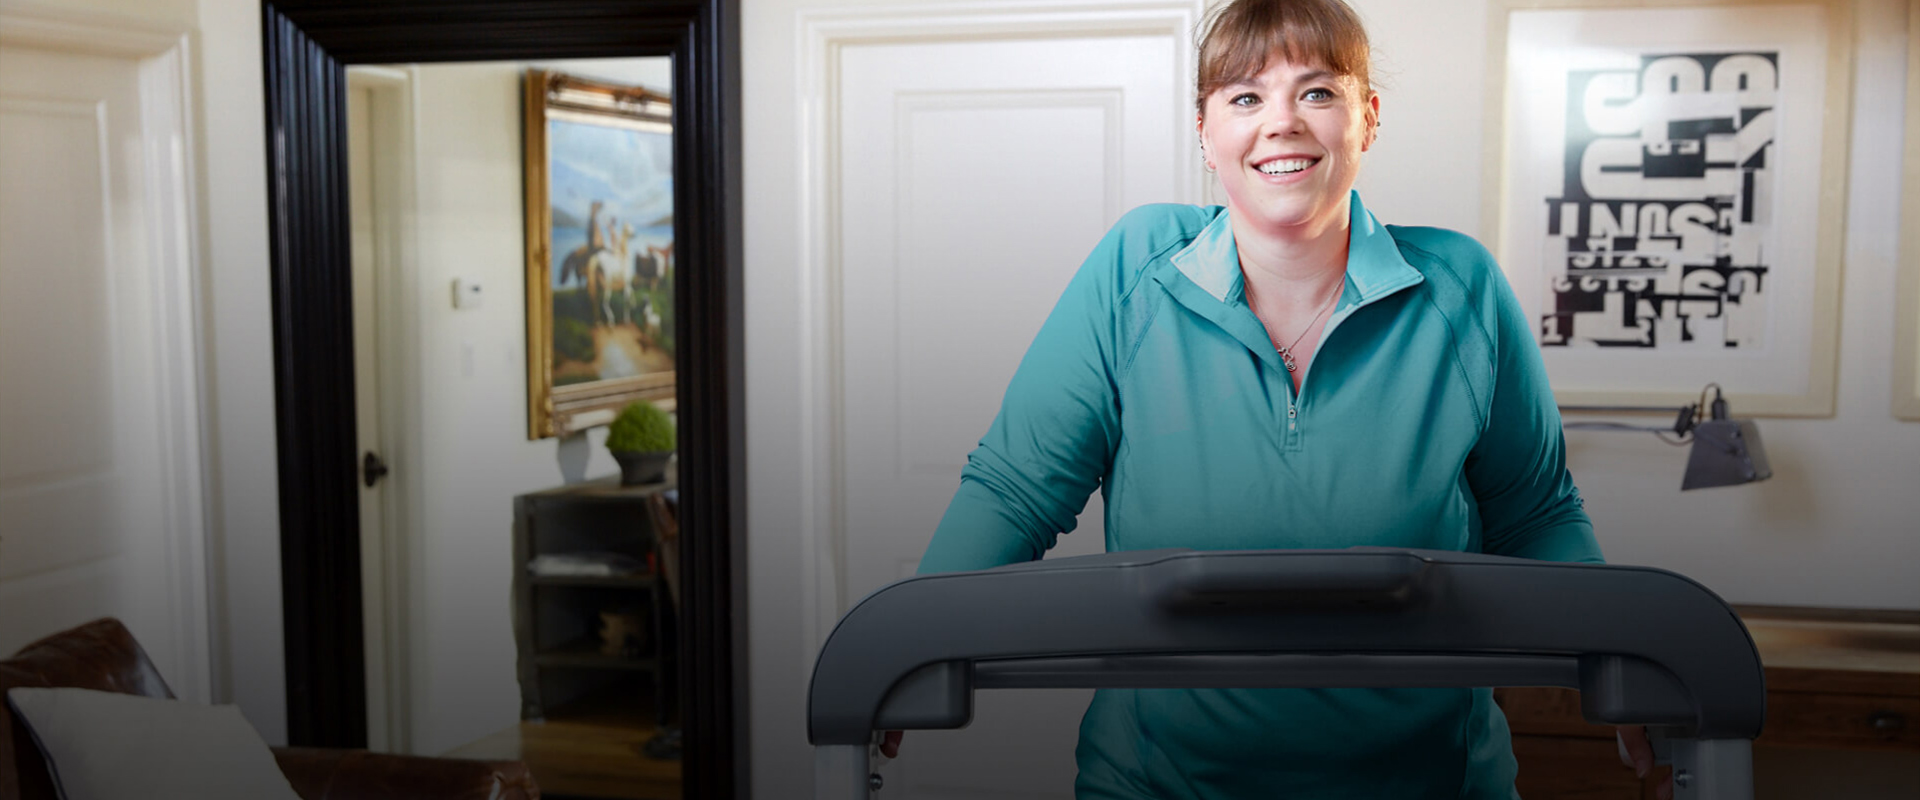 woman walking on a TreadClimber cardio machine